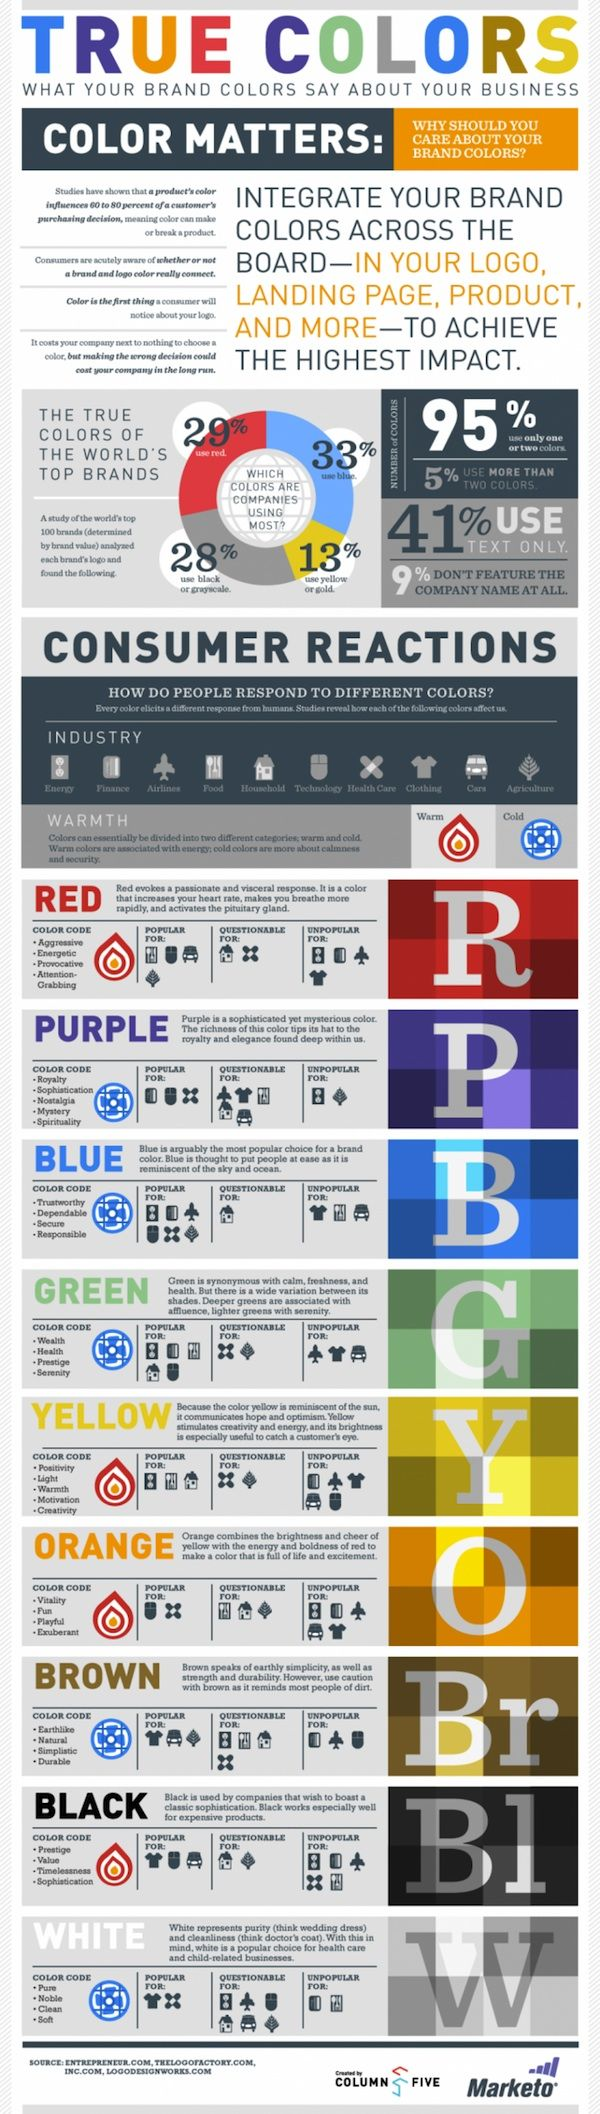 The most-popular colors among top brands